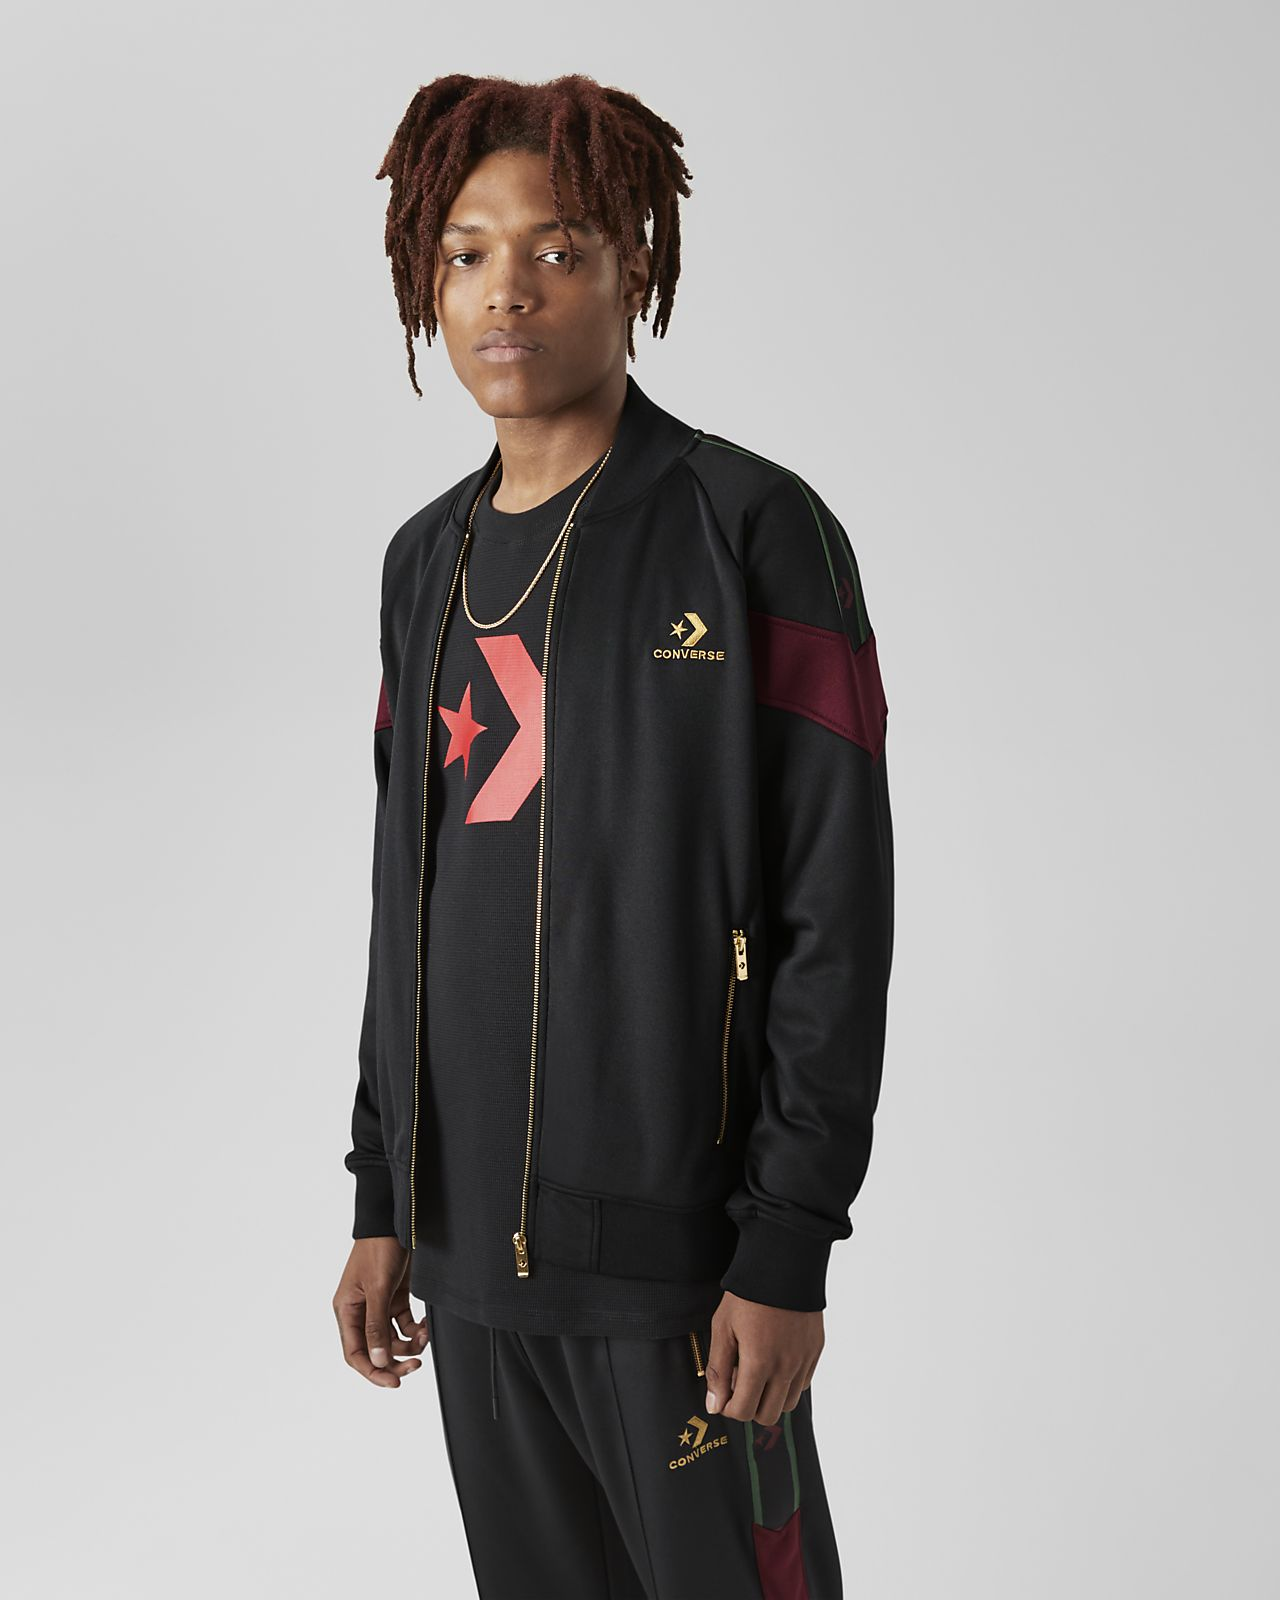 Converse Luxe Star Chevron  Men's Track Jacket